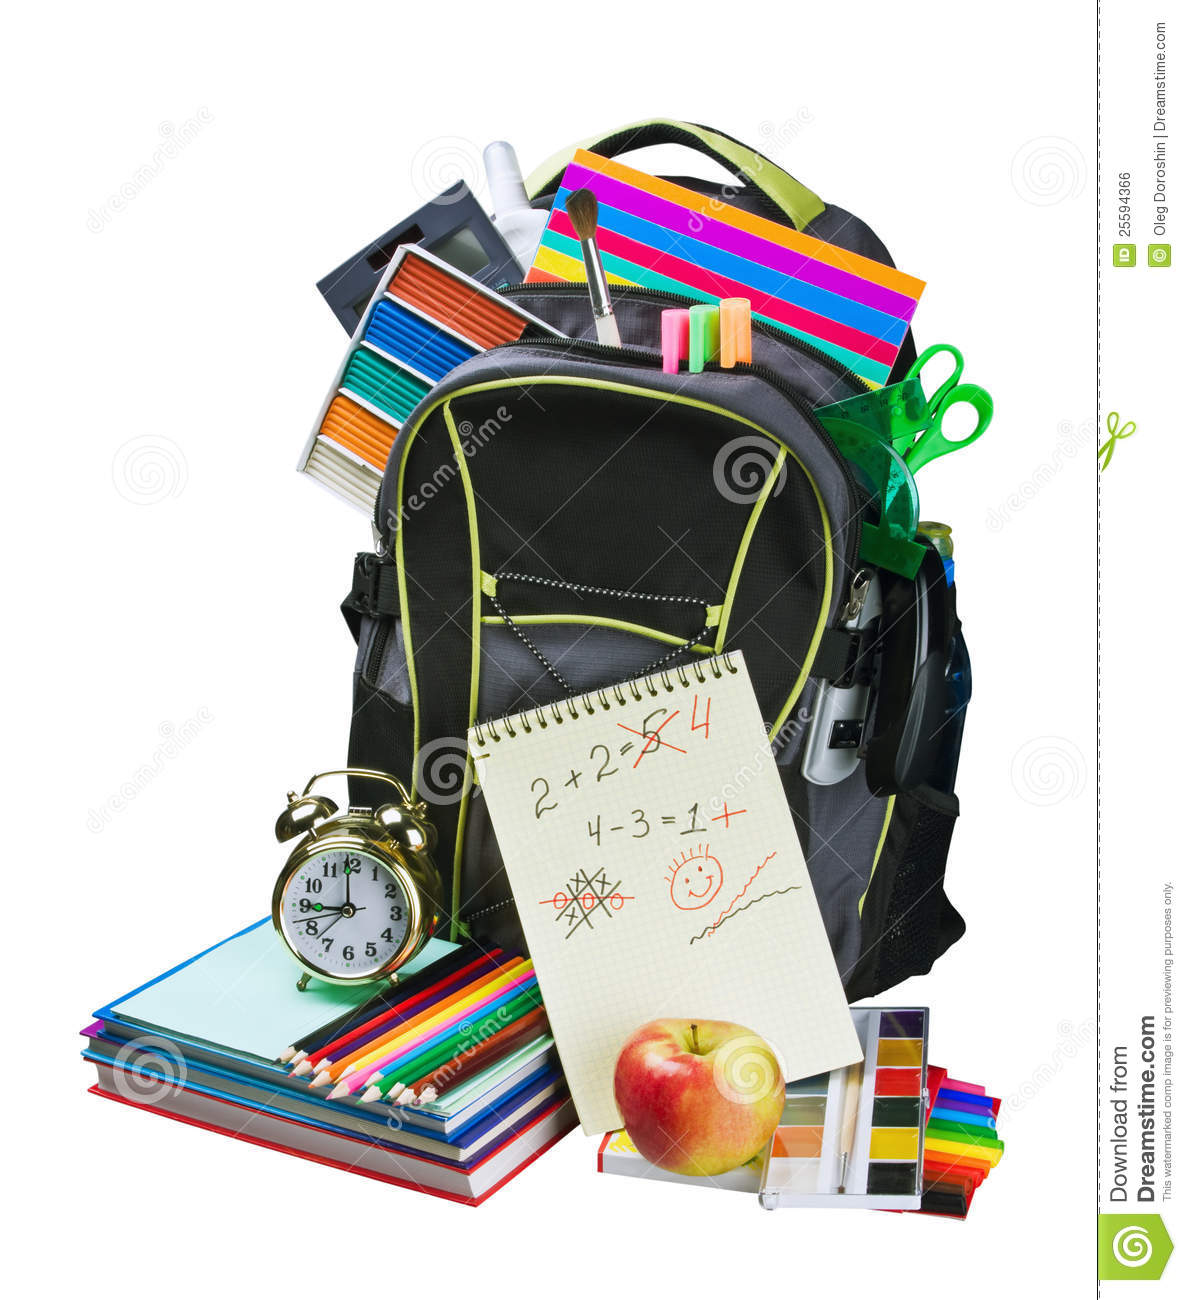 More similar stock images of ` Backpack full of school supplies `